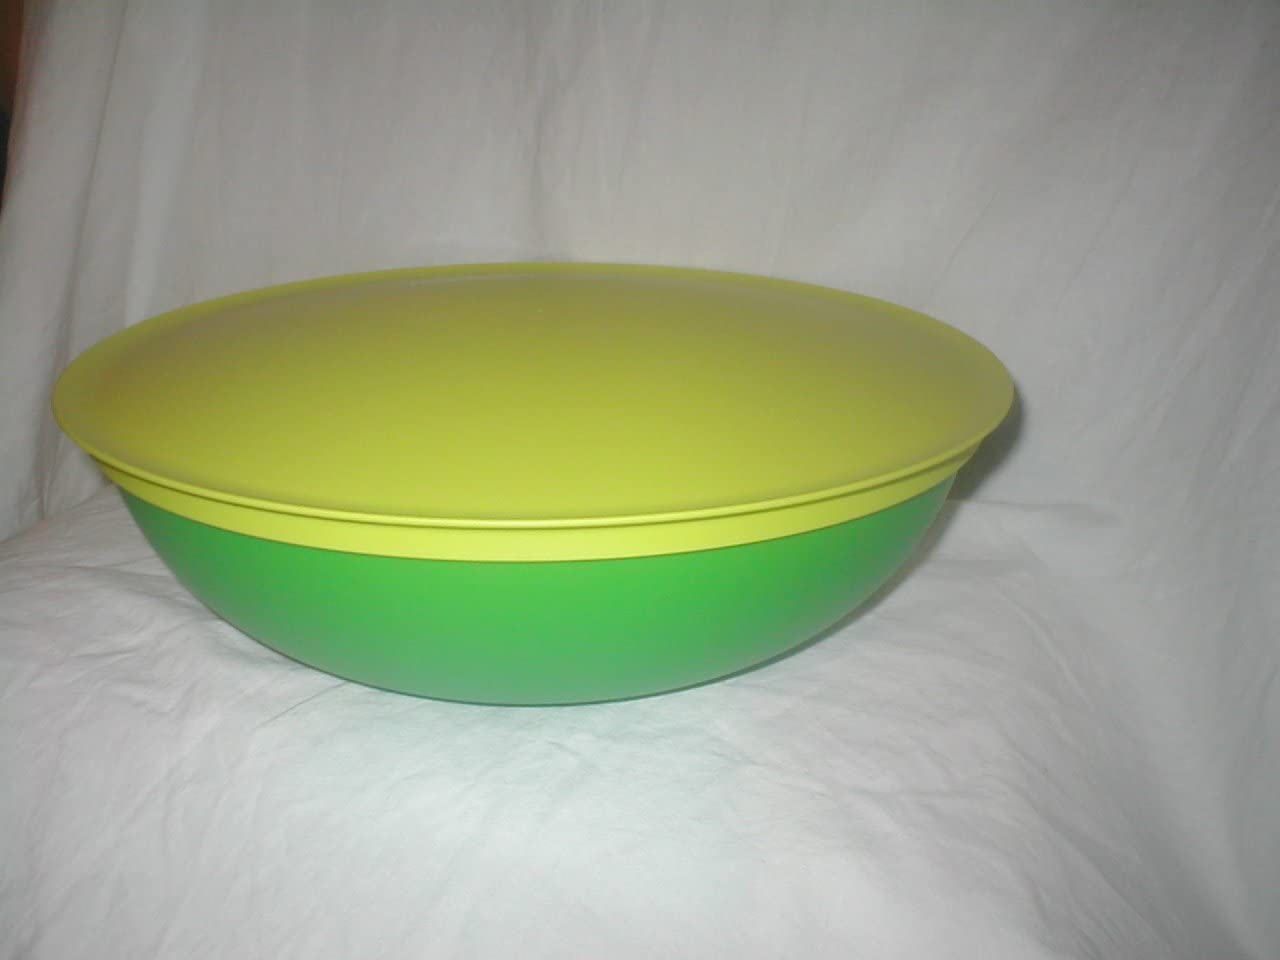 Max 43% OFF Tupperware Chic Dining Large Serving Bowl L 15-cup Selling 3.5